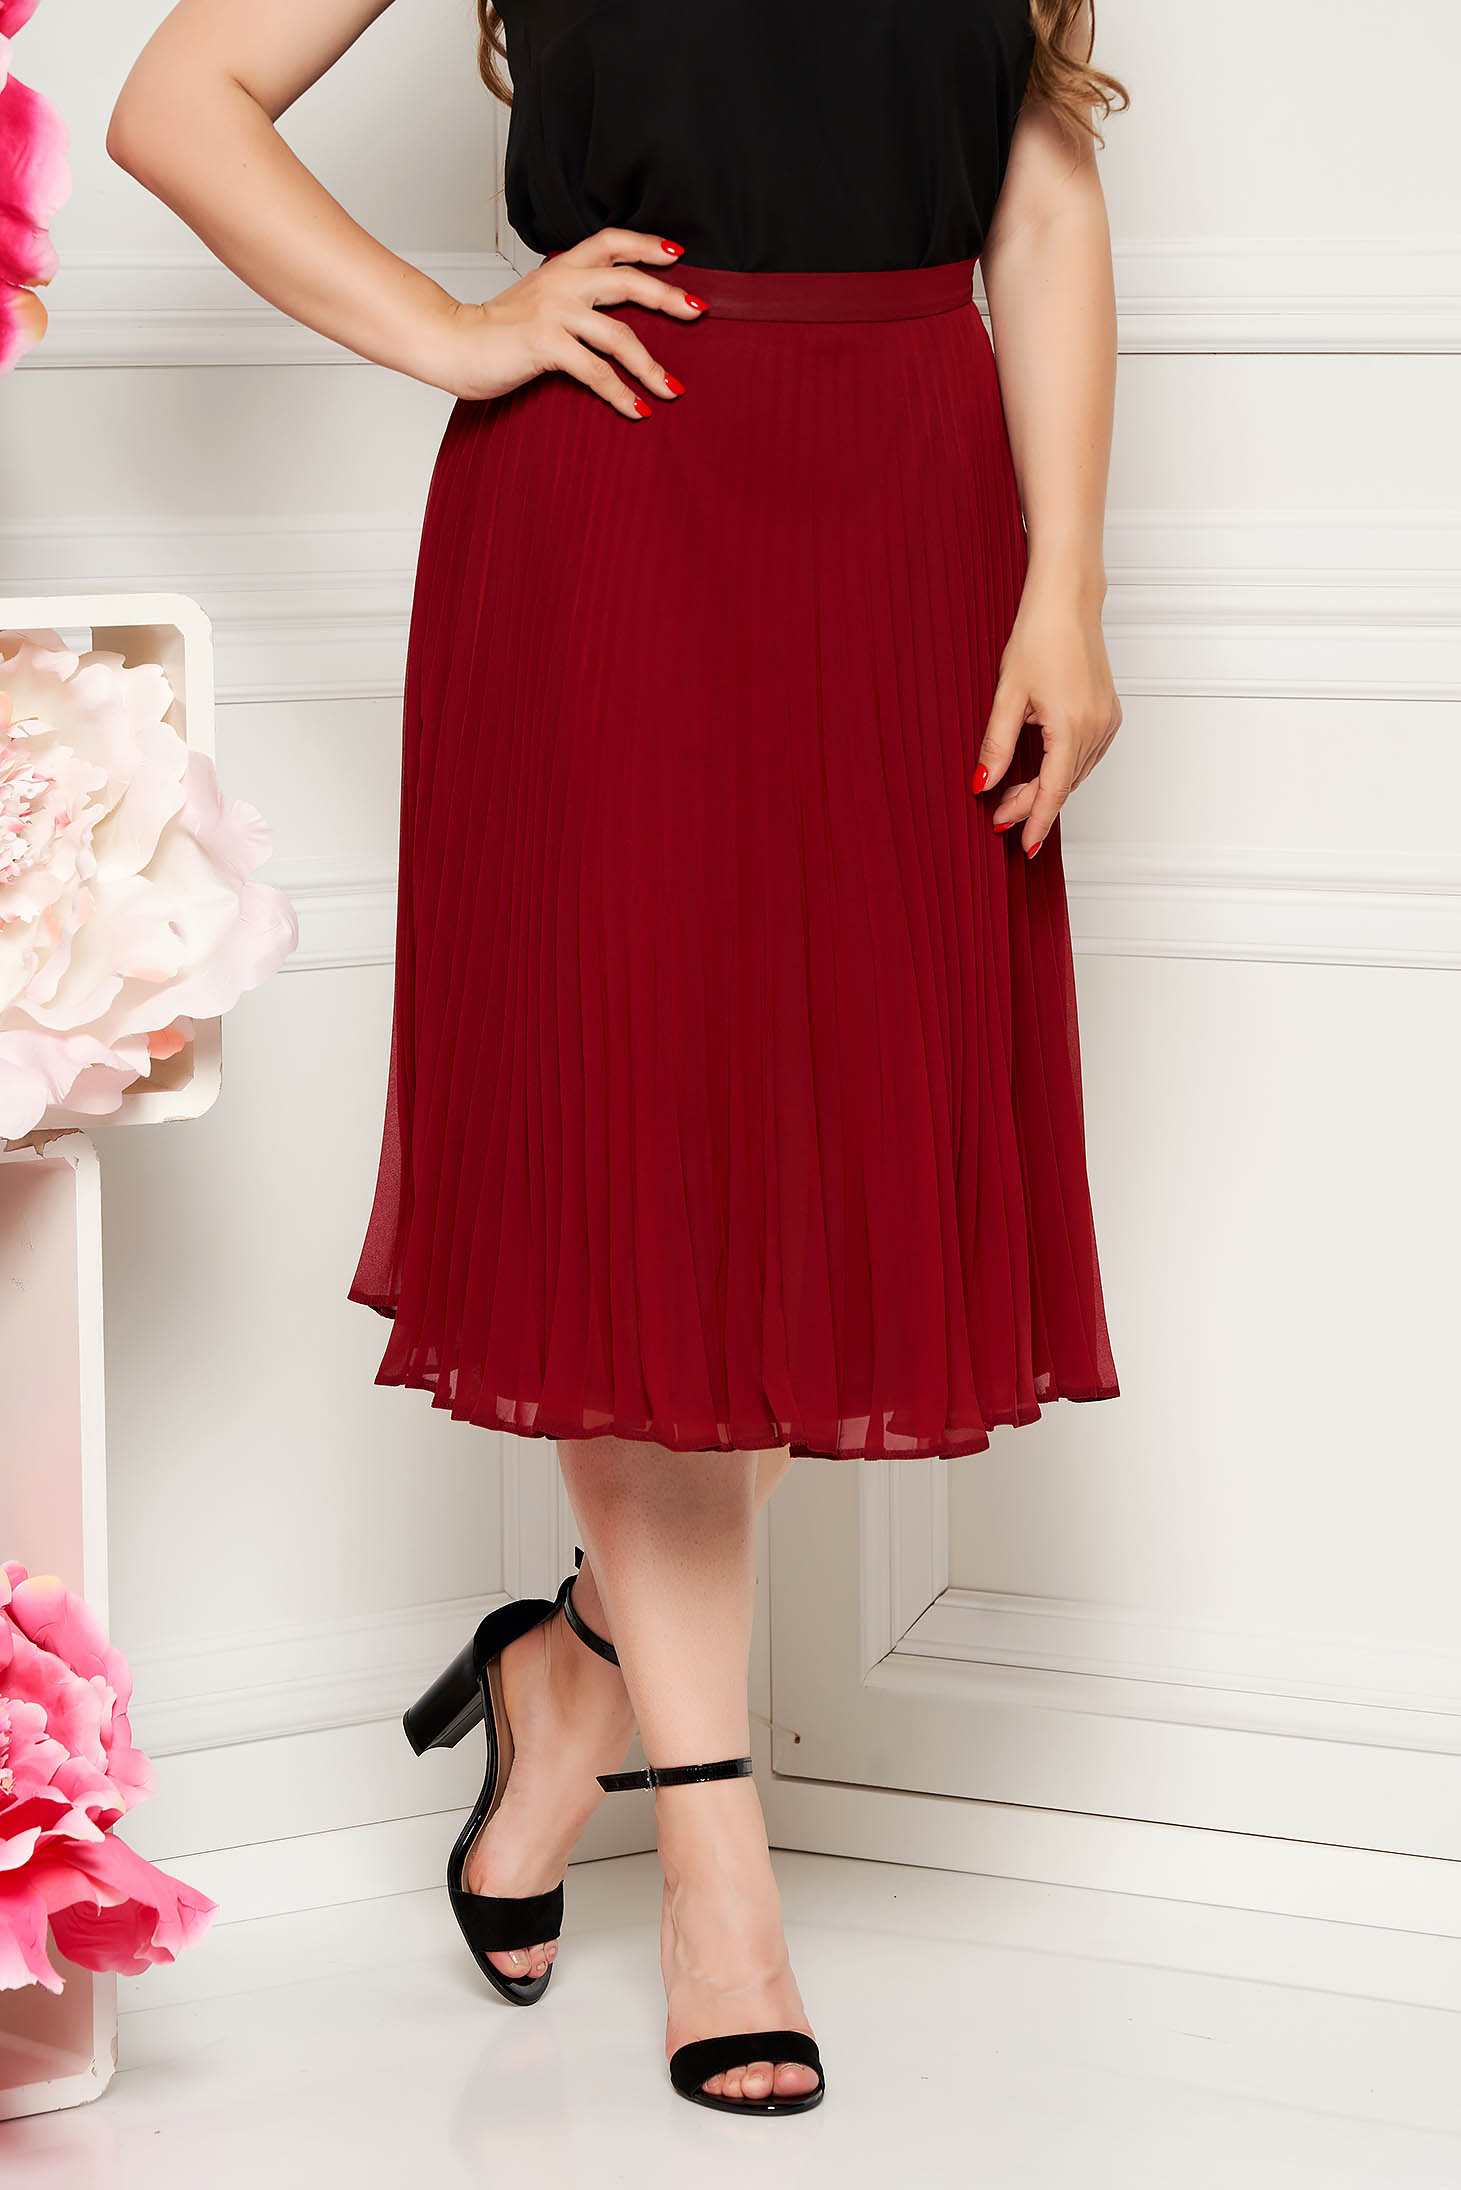 StarShinerS burgundy elegant cloche skirt voile fabric folded up high waisted